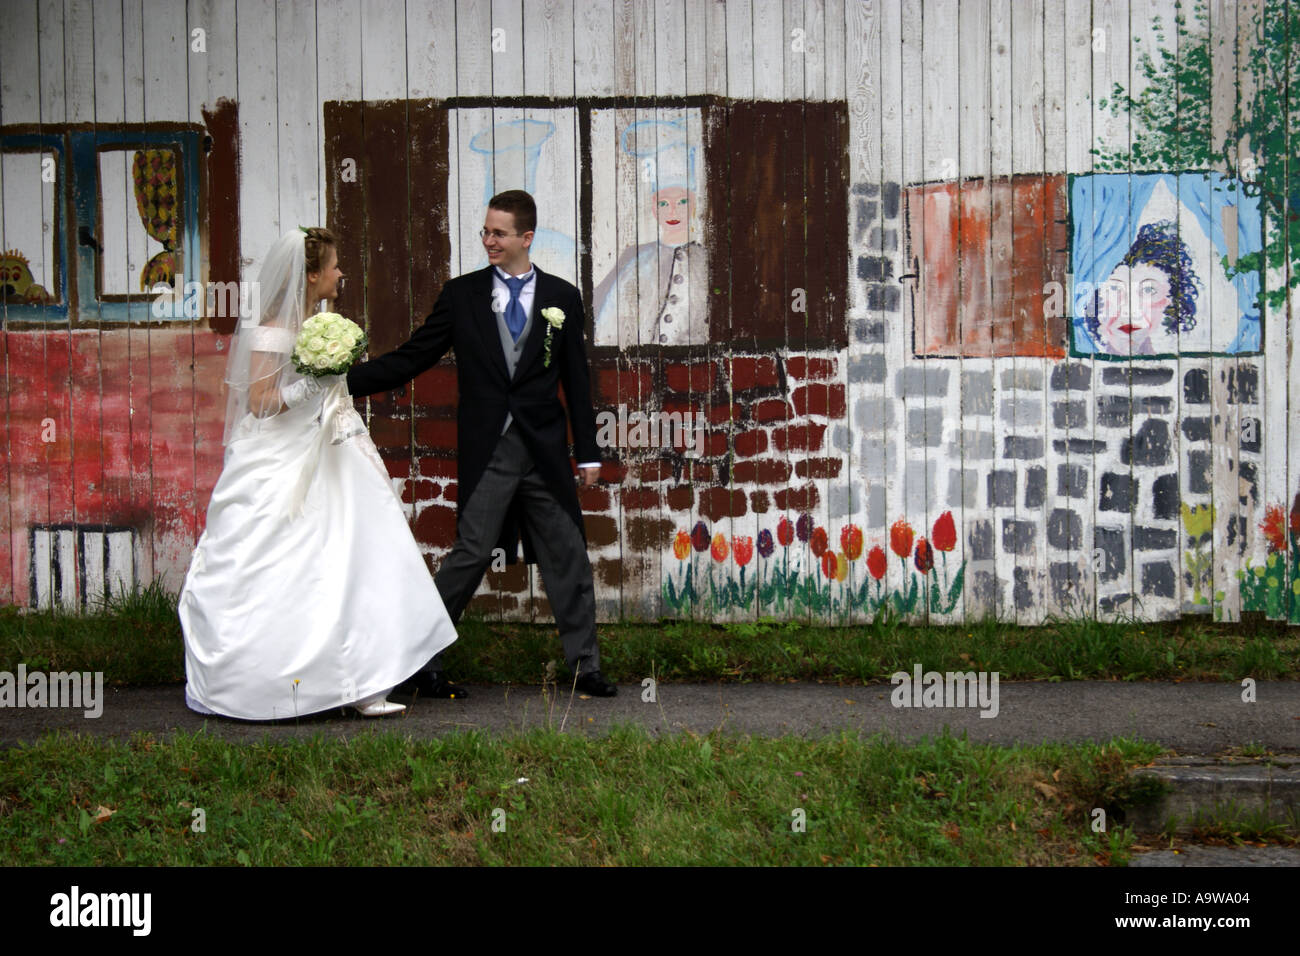 bride and groom in front of Graffiti wall painting Stock Photo